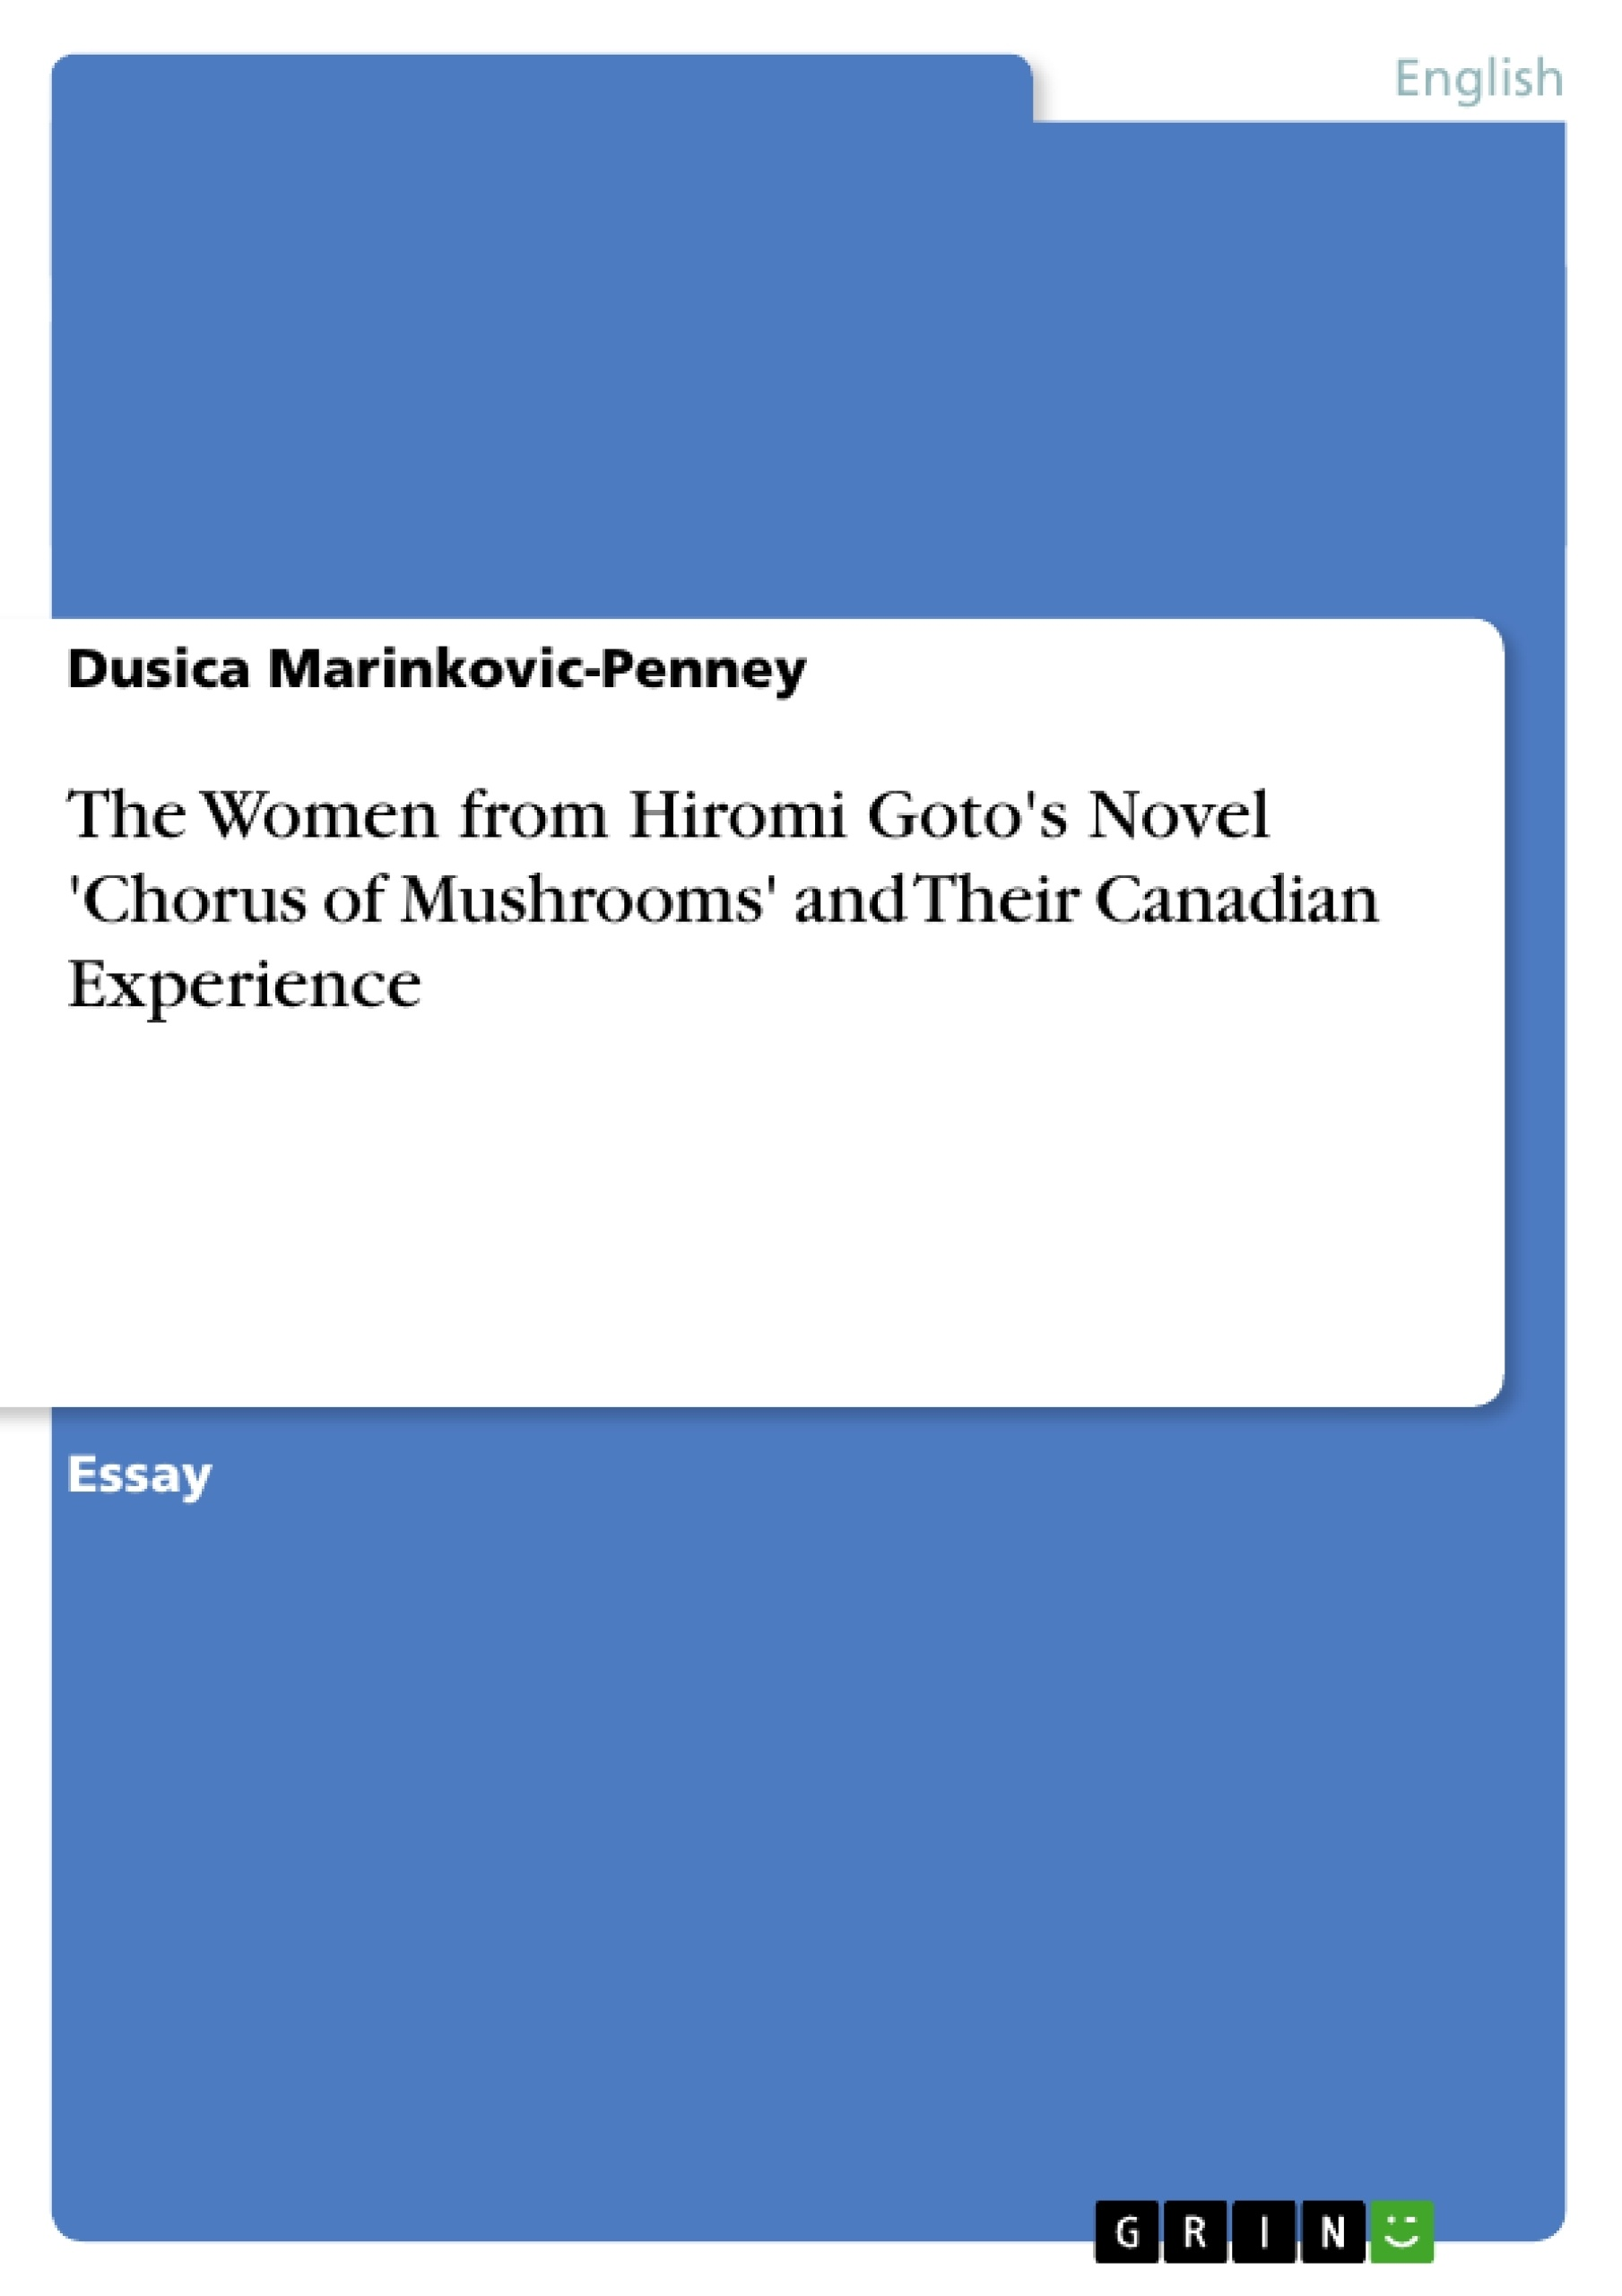 Title: The Women from Hiromi Goto's Novel 'Chorus of Mushrooms' and Their Canadian Experience